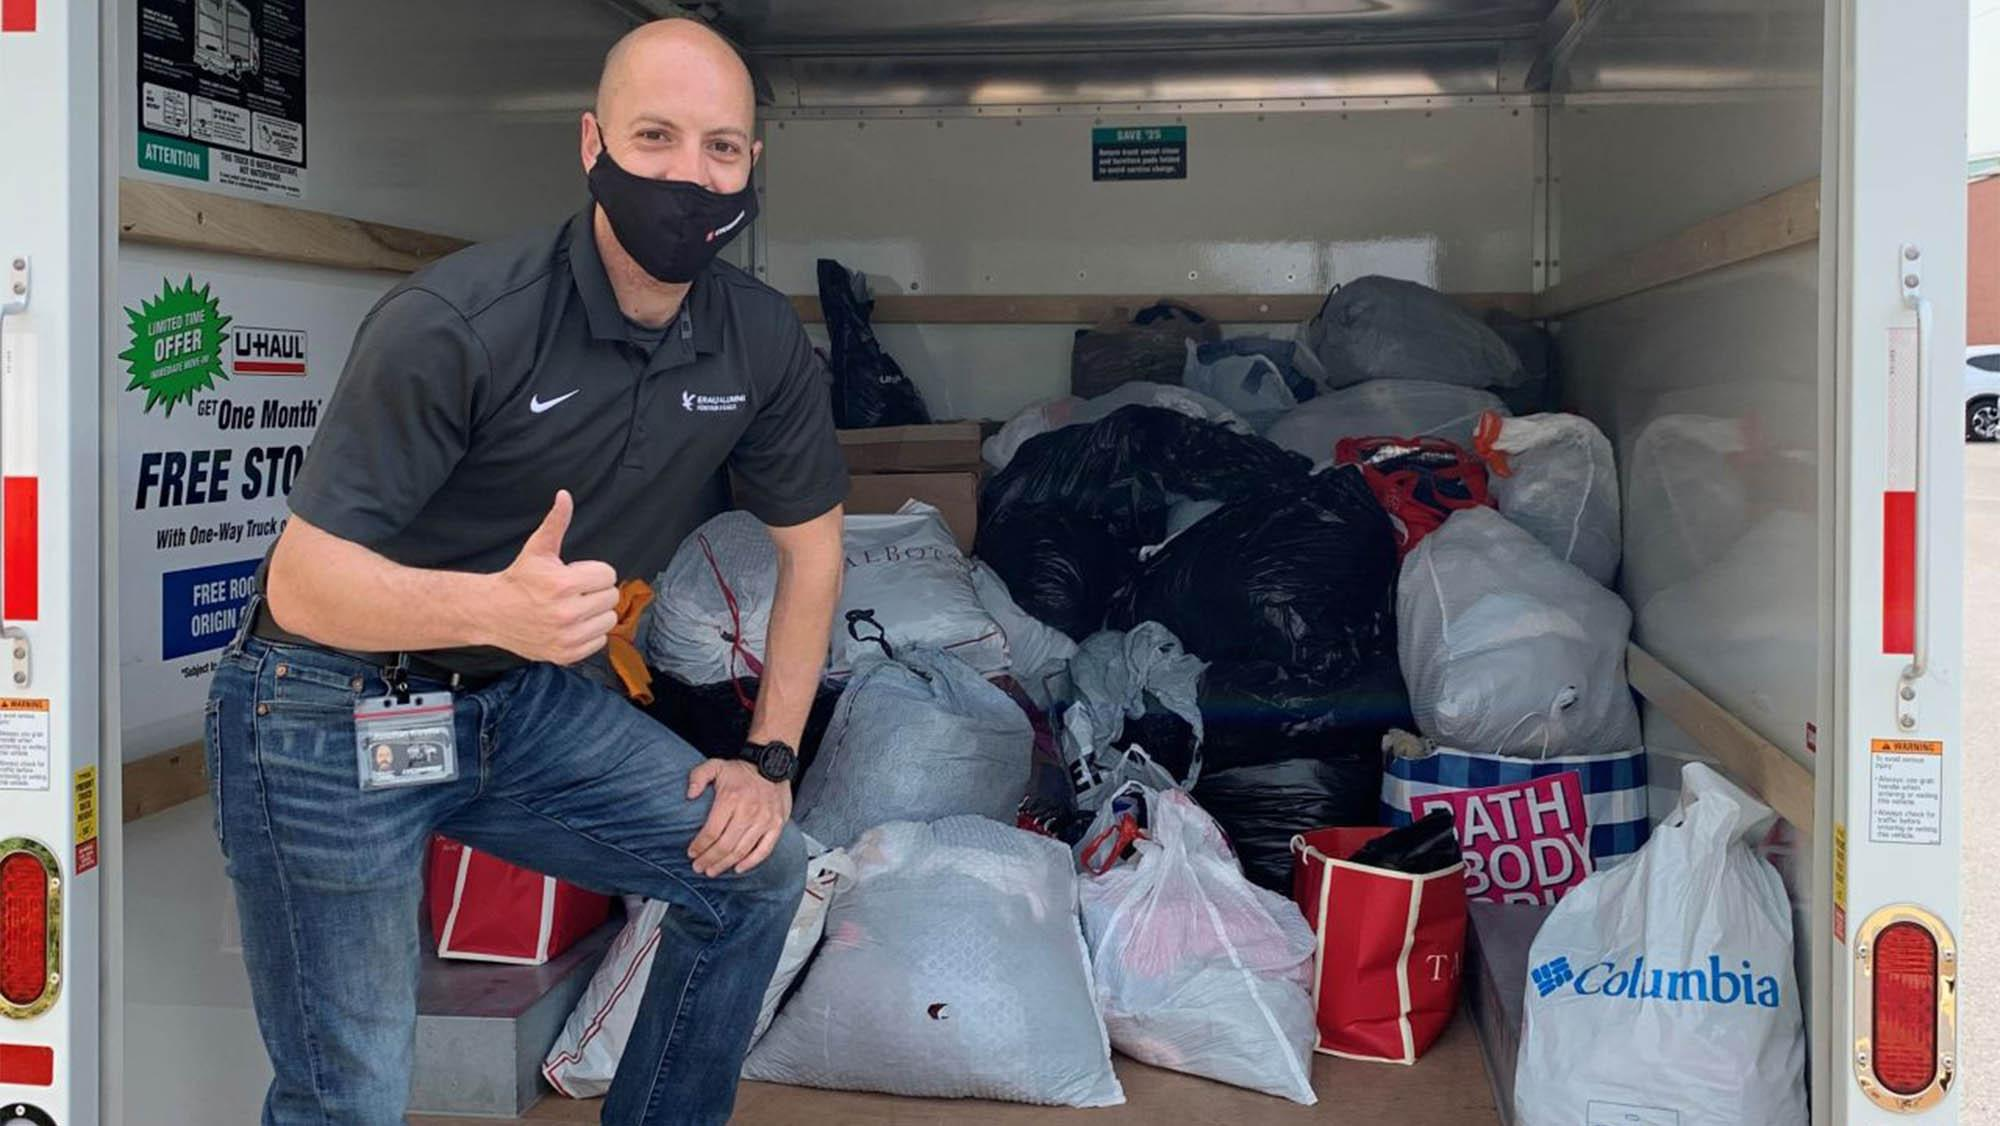 Jonathan Korelitz delivering over 700 lbs of clothing to the local AIDS Resource center.